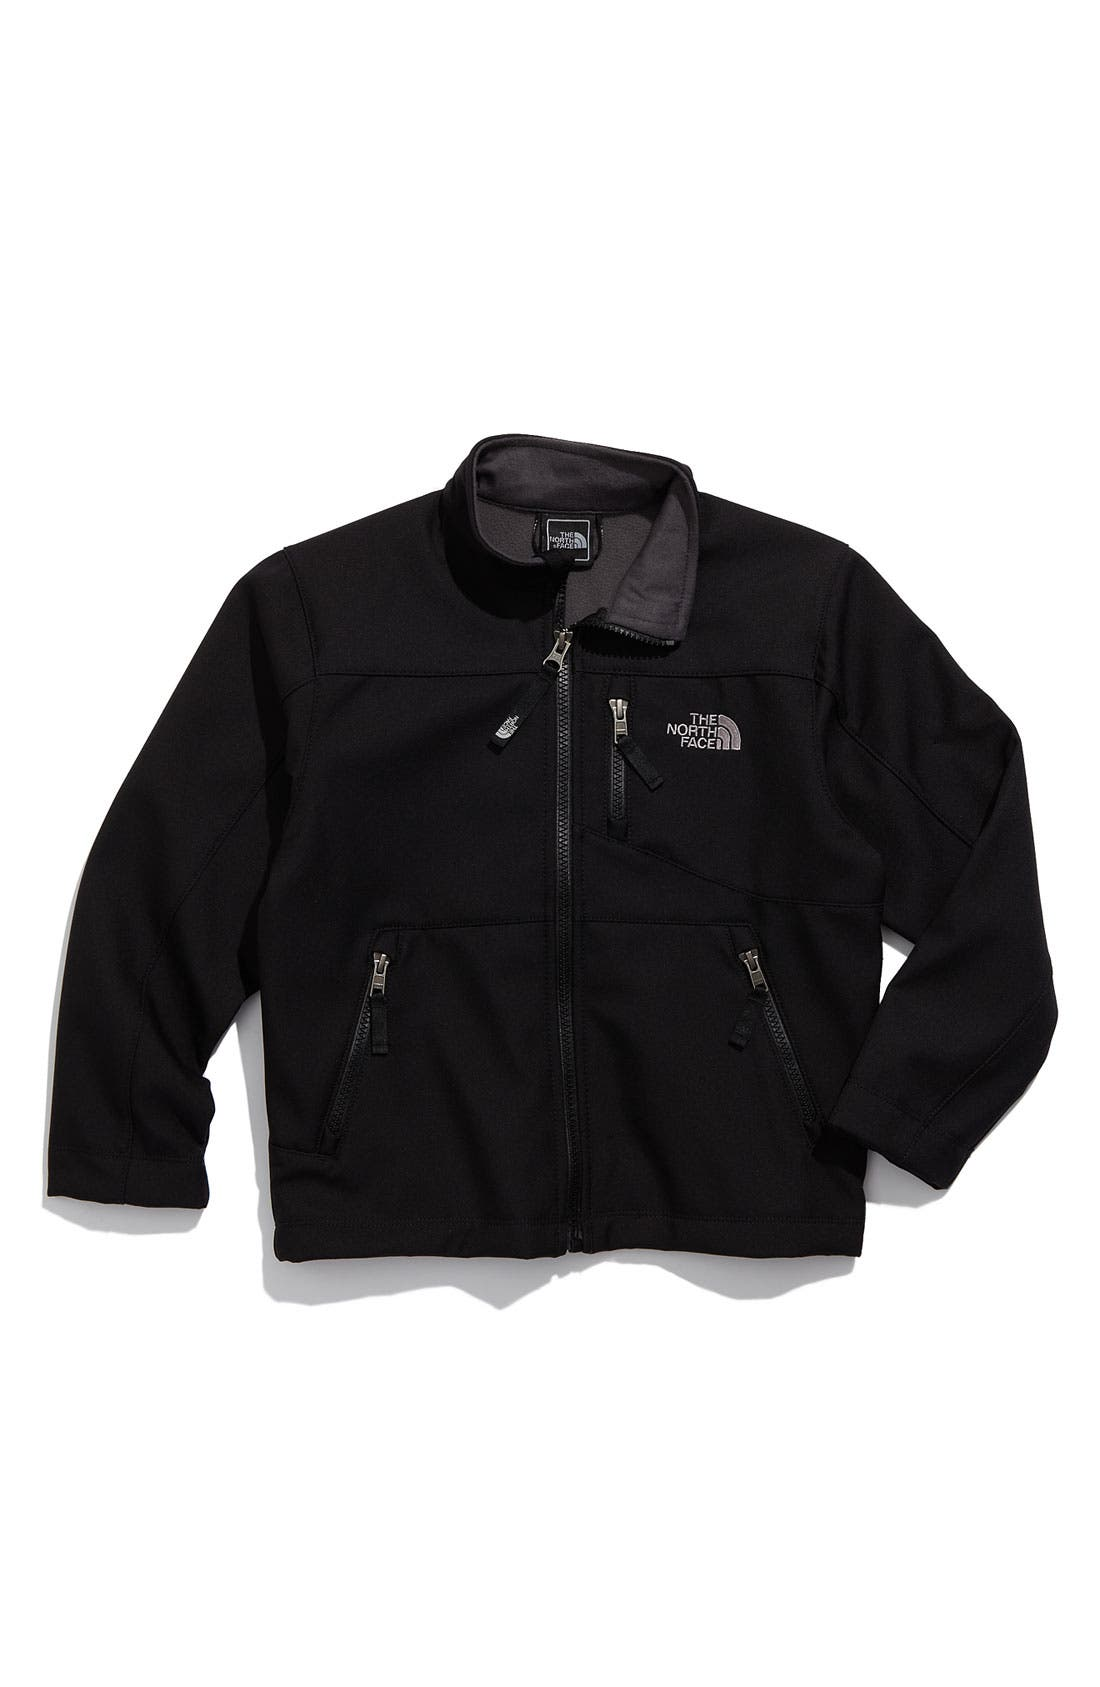 Main Image - The North Face 'Apex Bionic' Jacket (Little Boys)